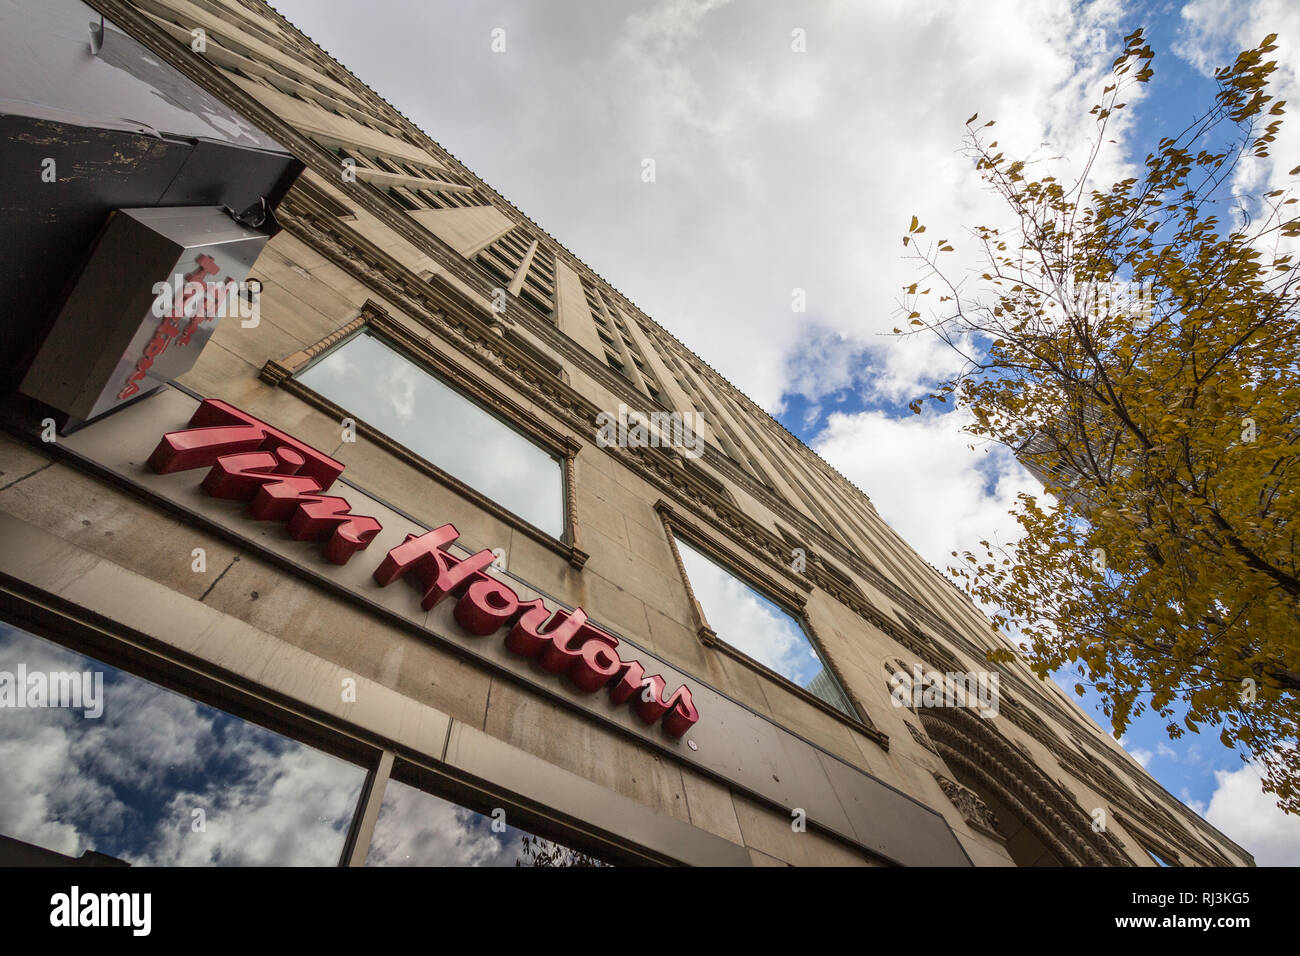 MONTREAL, CANADA - NOVEMBER 7, 2018: Tim Hortons logo in front of one of their restaurants in Montreal, Quebec. Tim Hortons is a cafe and fastfood can - Stock Image